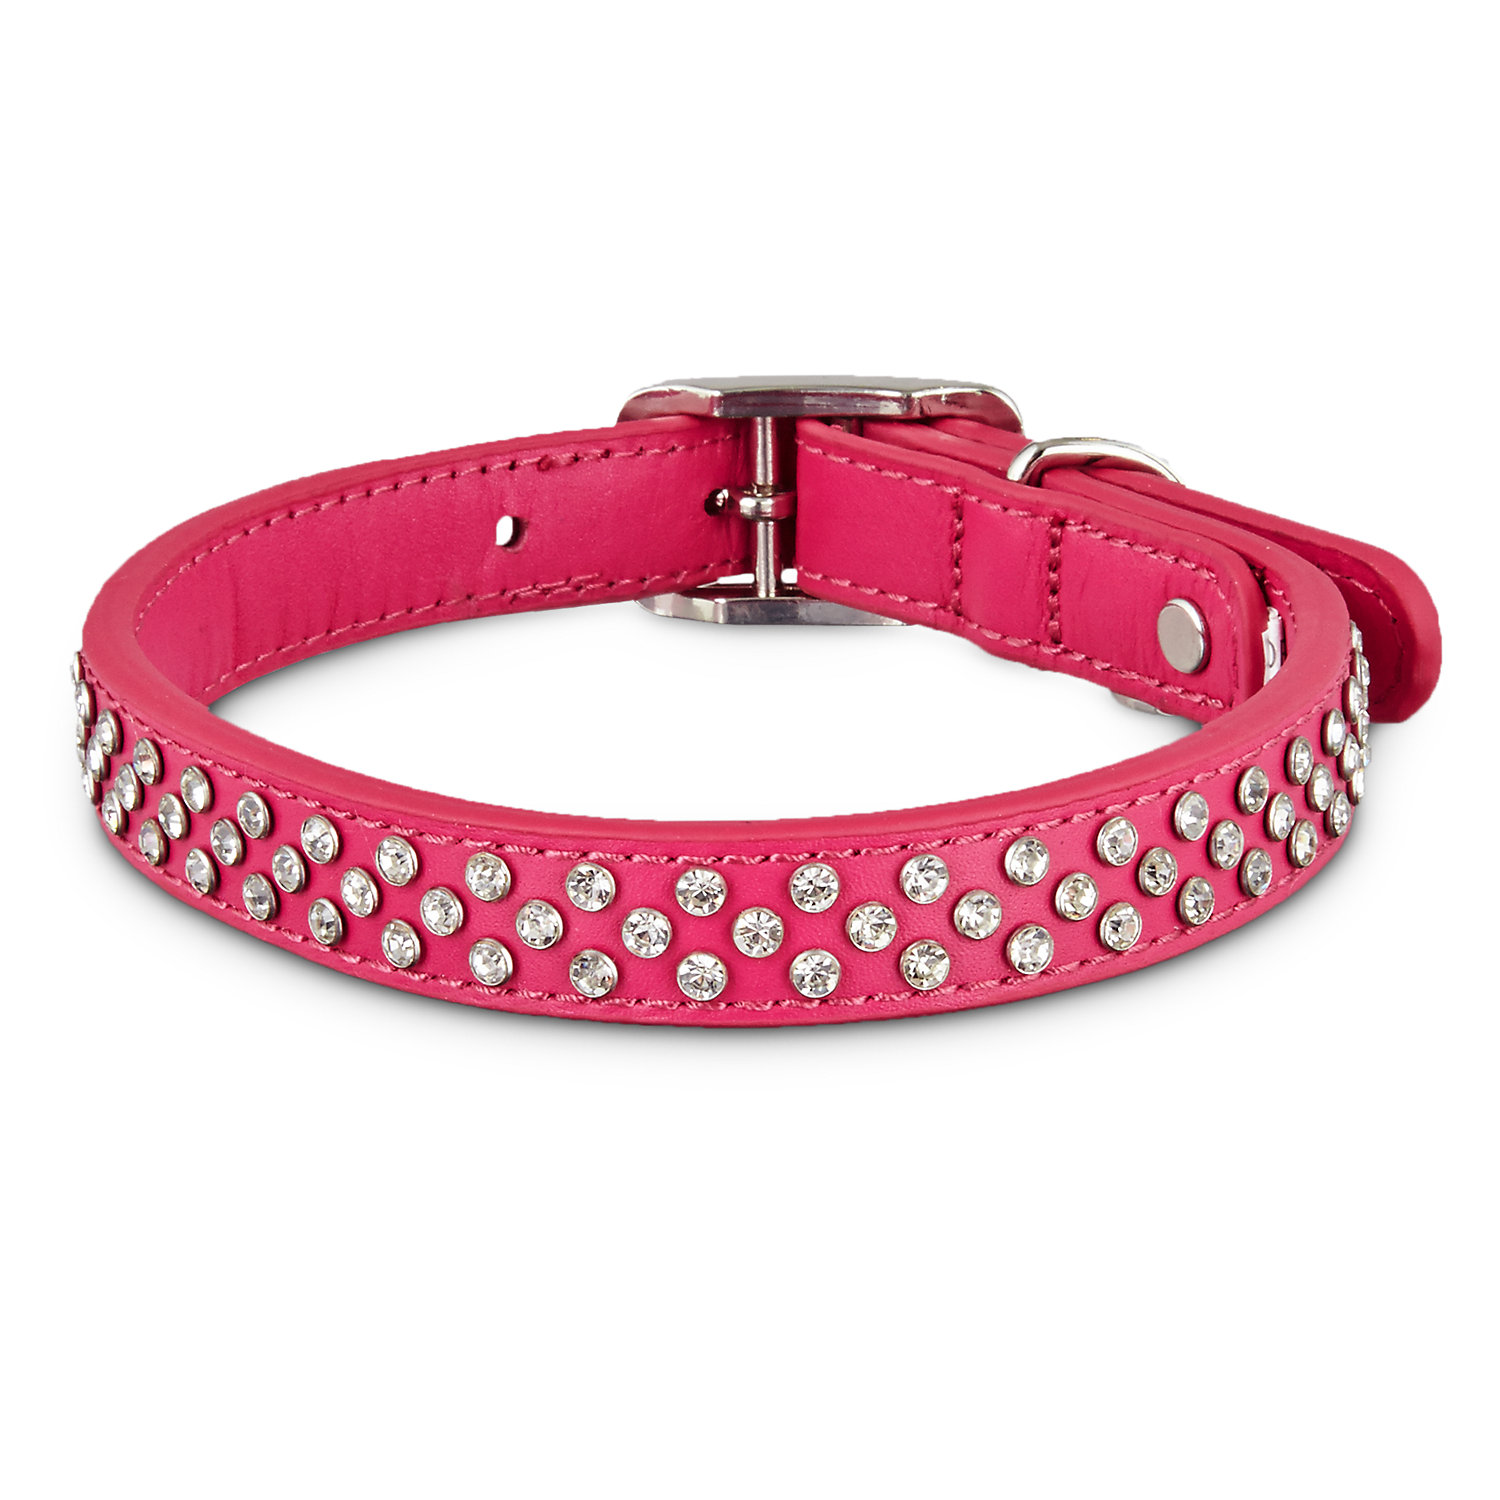 Bond & Co. Leather Bling Pink Dog Collar, For Neck Sizes 15-